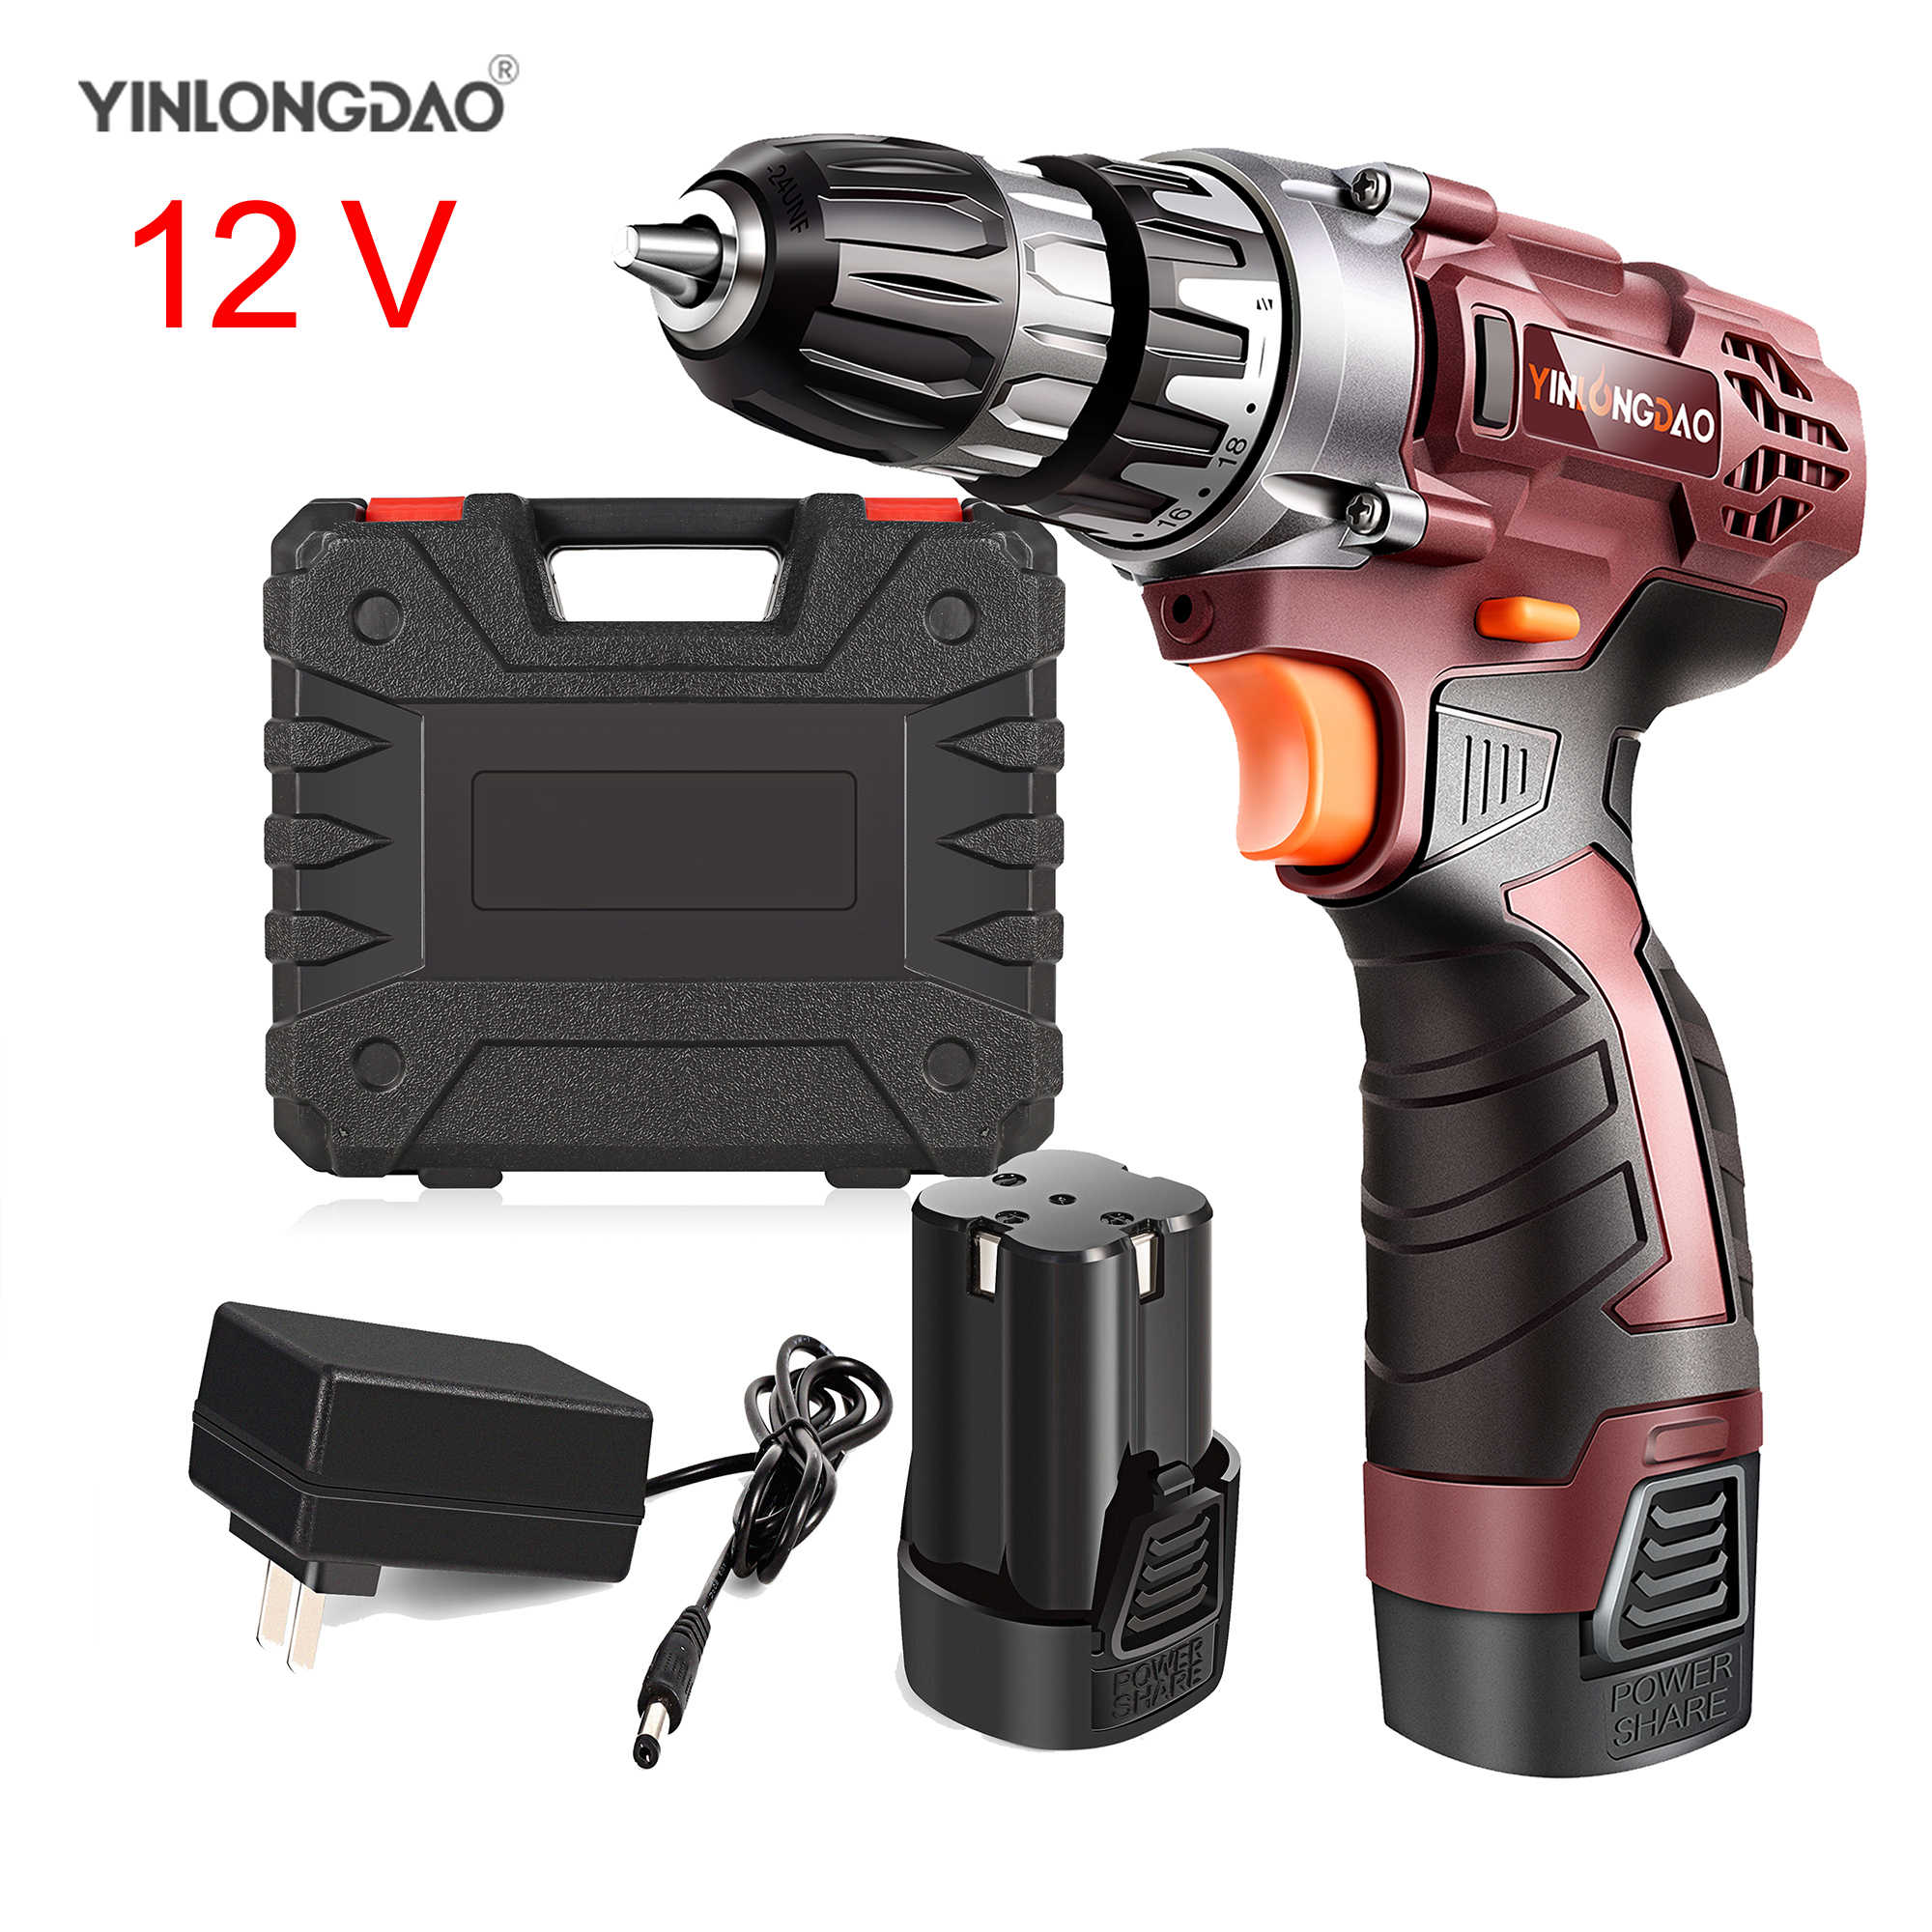 12V Lithium drill Electric Screwdriver Cordless Drill  Lithium-Ion Battery Wireless Power Driver DIY Torque drill Power Tools